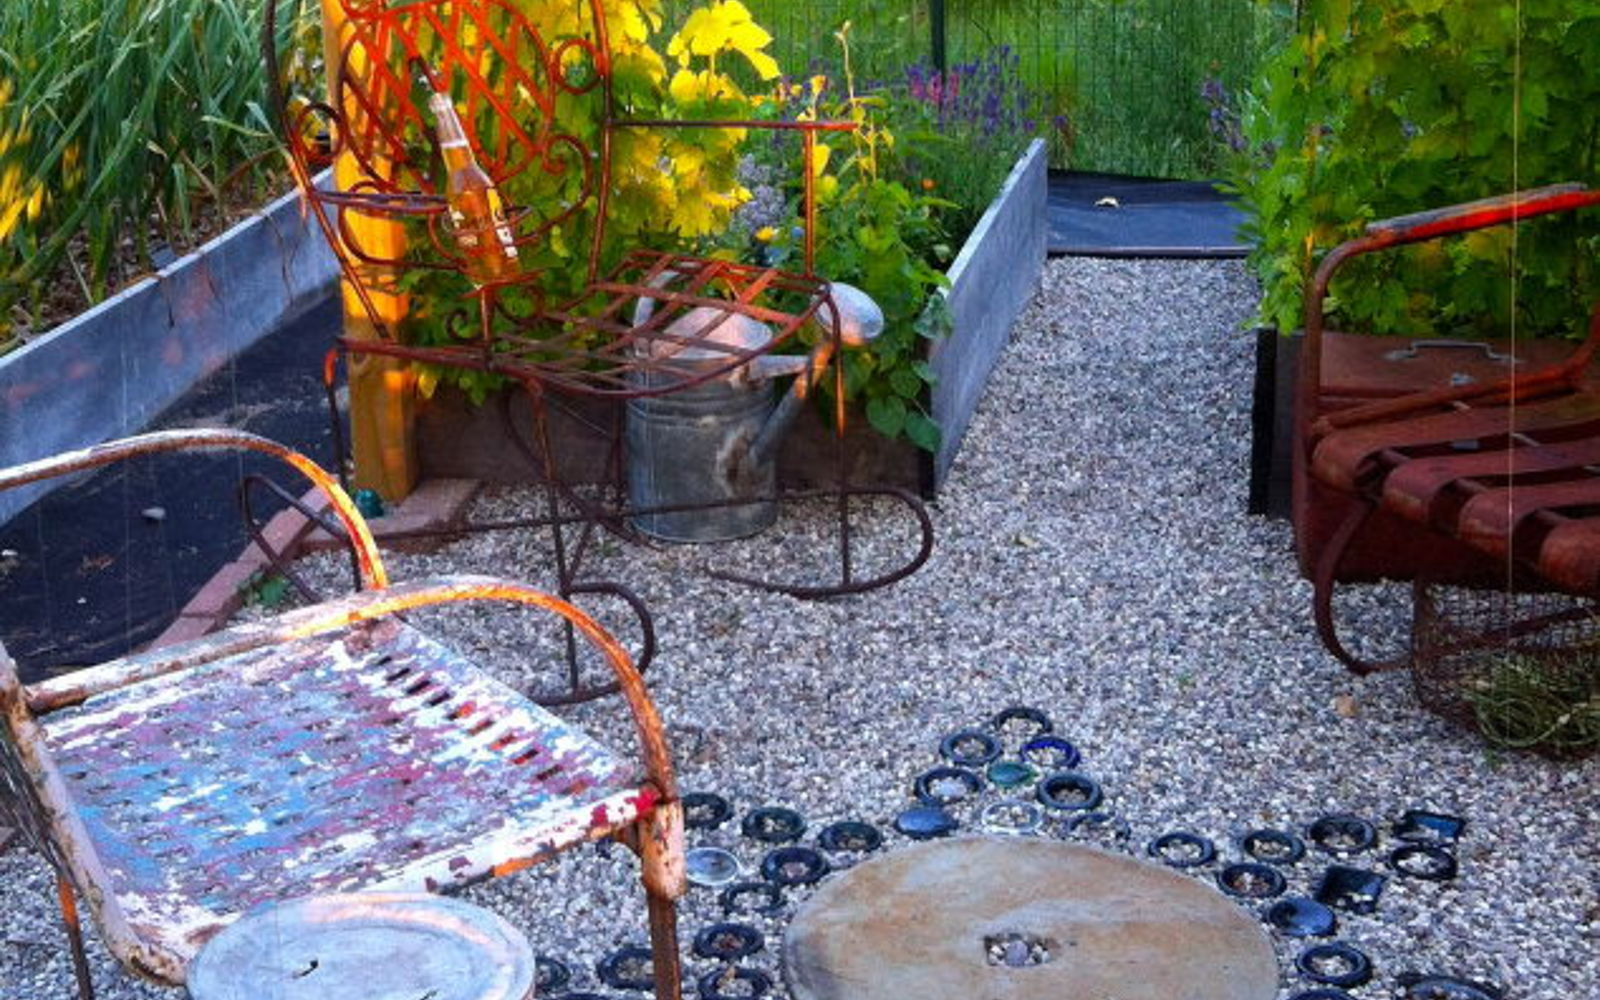 s 15 incredible backyard ideas using empty wine bottles, gardening, outdoor living, repurposing upcycling, Bury a few in your garden as a mosaic